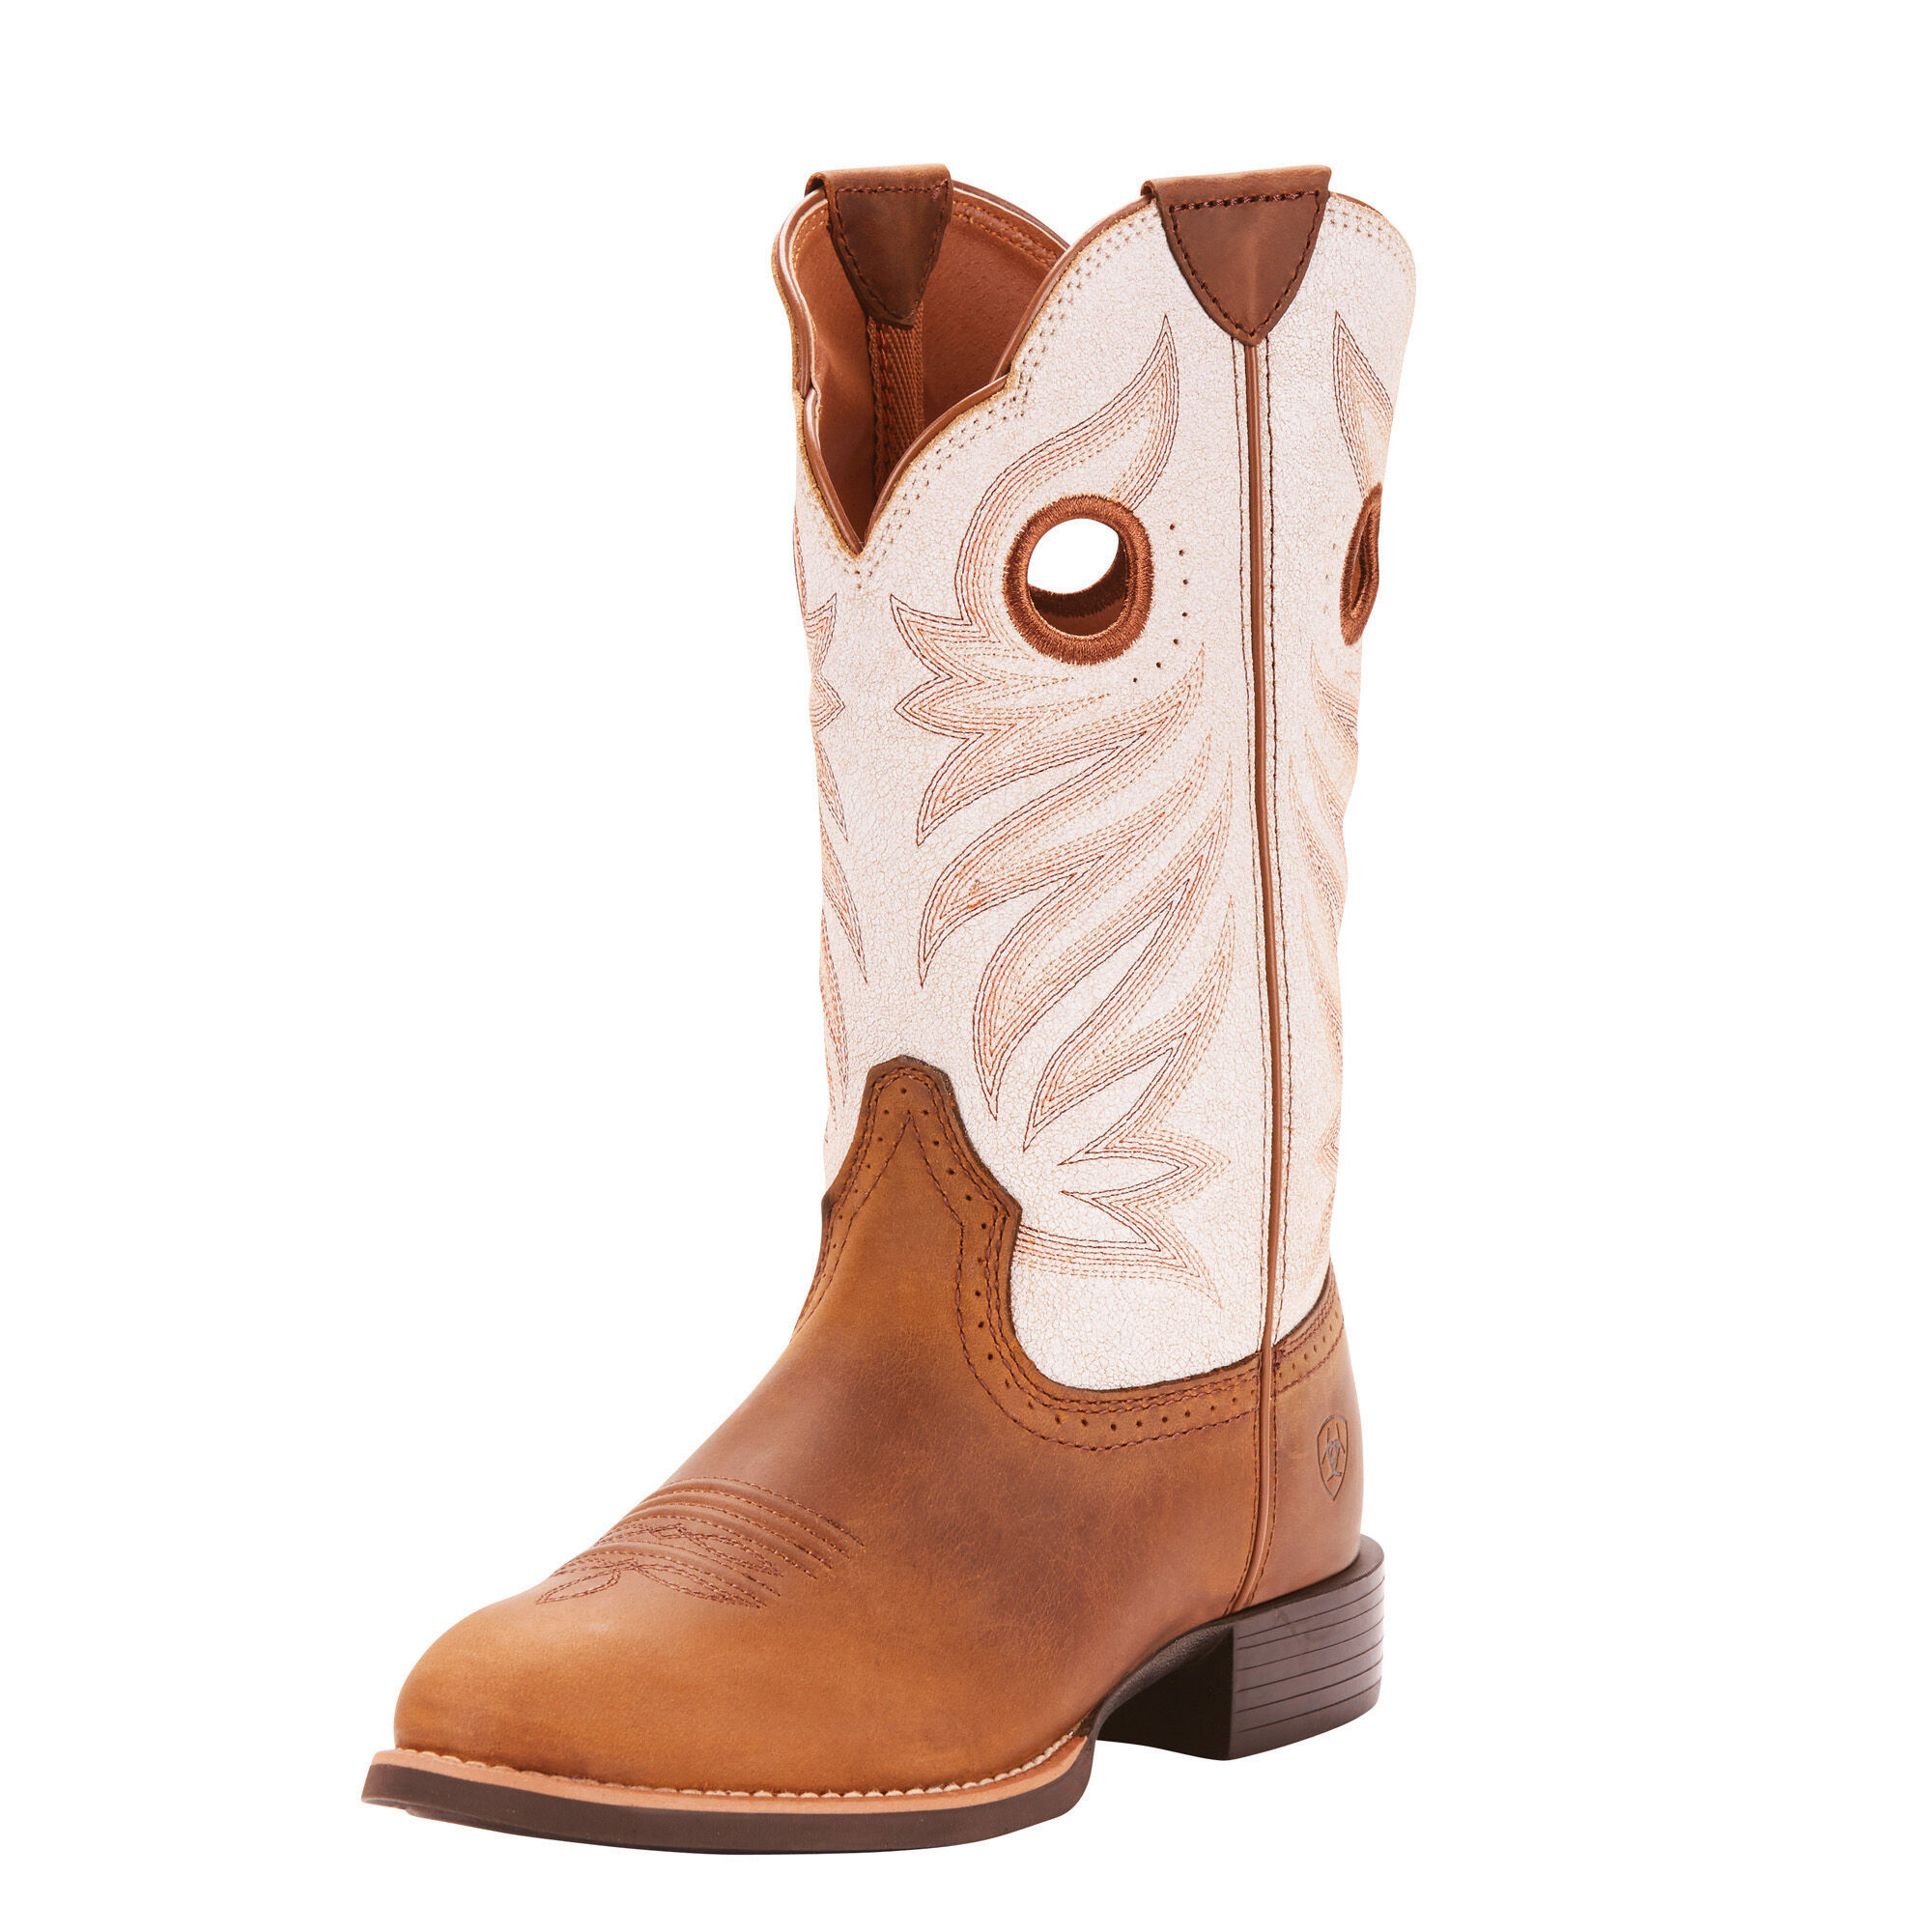 Women's Round Up Stockman Western Boots in Crushed Peanut by Ariat